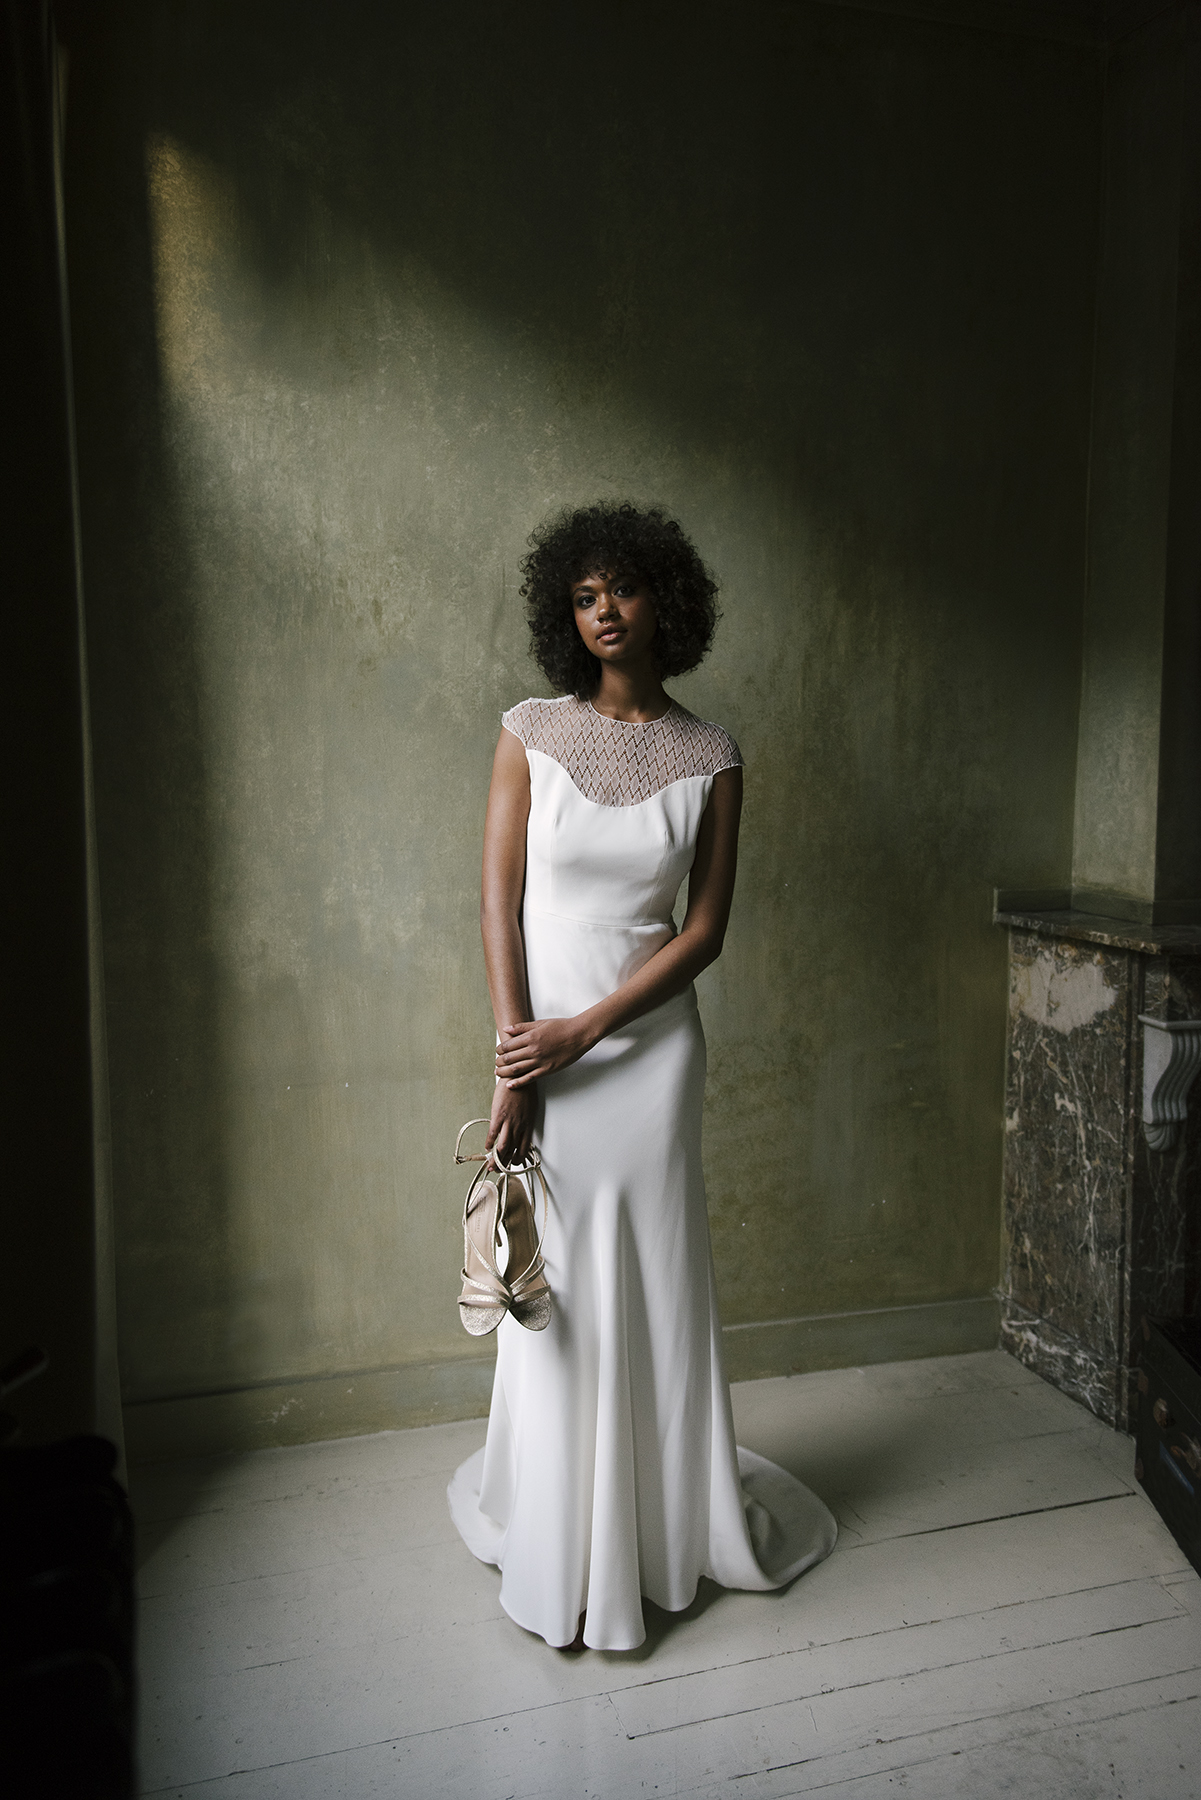 valentine-avoh-robe-mariee-marlene-wedding-dress-bruxelles-photo-elodie-timmermans-43.jpg